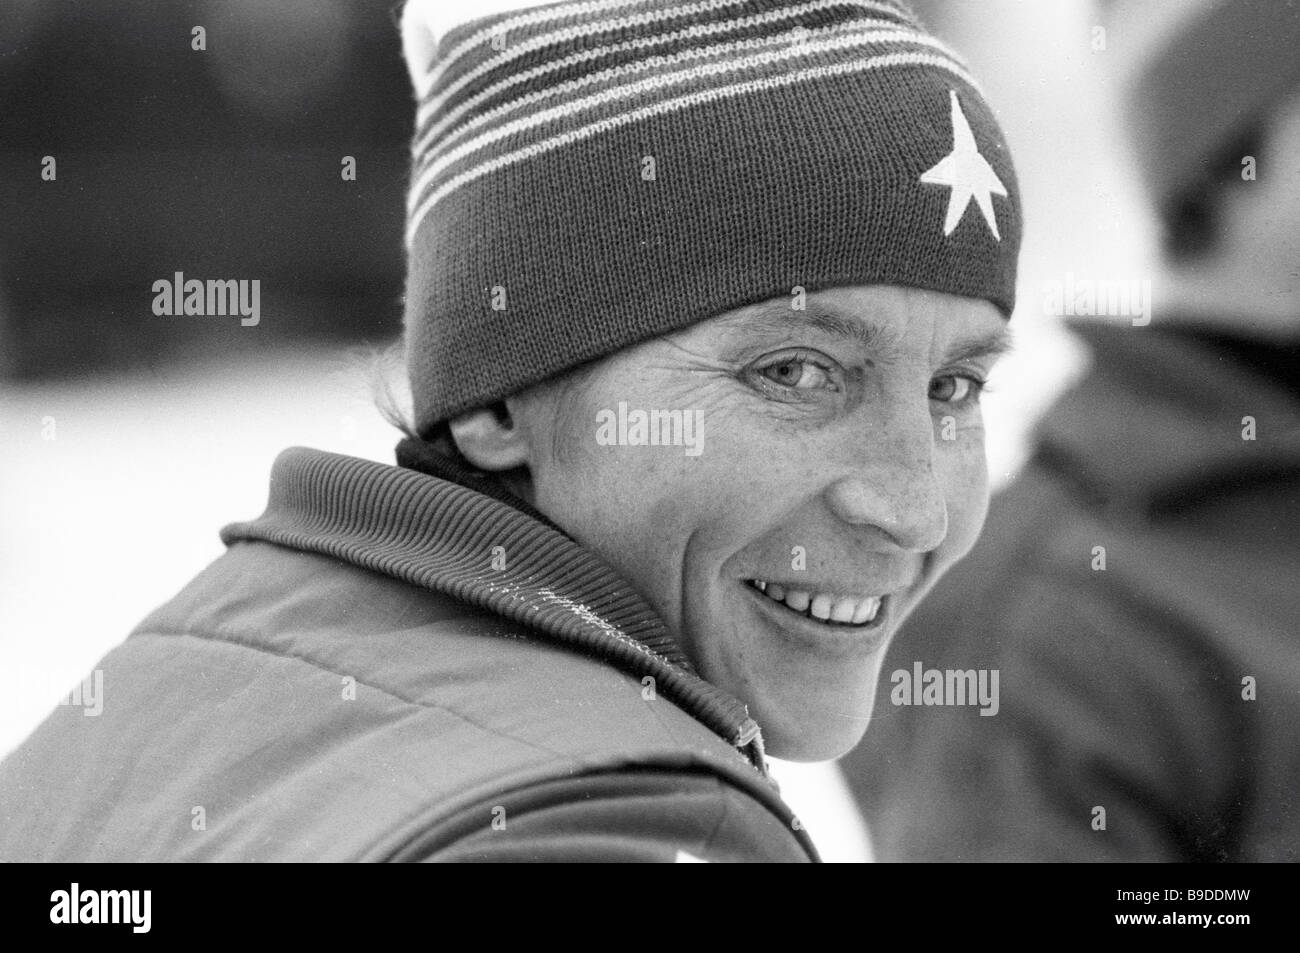 Galina Kulakova 8 Olympic medals Galina Kulakova 8 Olympic medals new photo